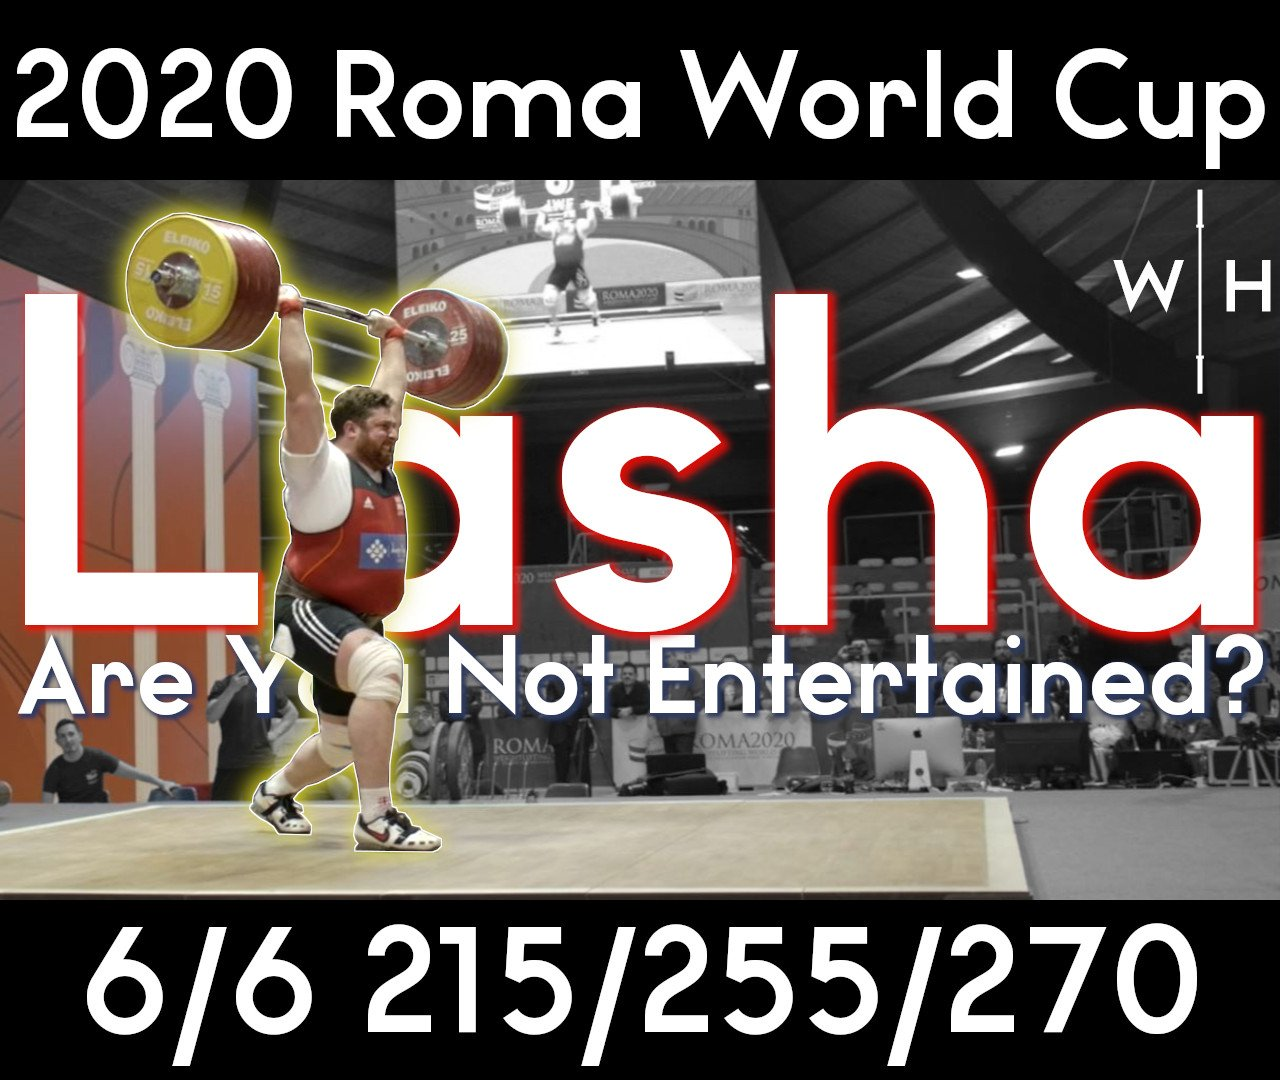 Lasha Talakhadze, the strongest man on earth, 215 snatch 255 clean and jerk in Rome 2020